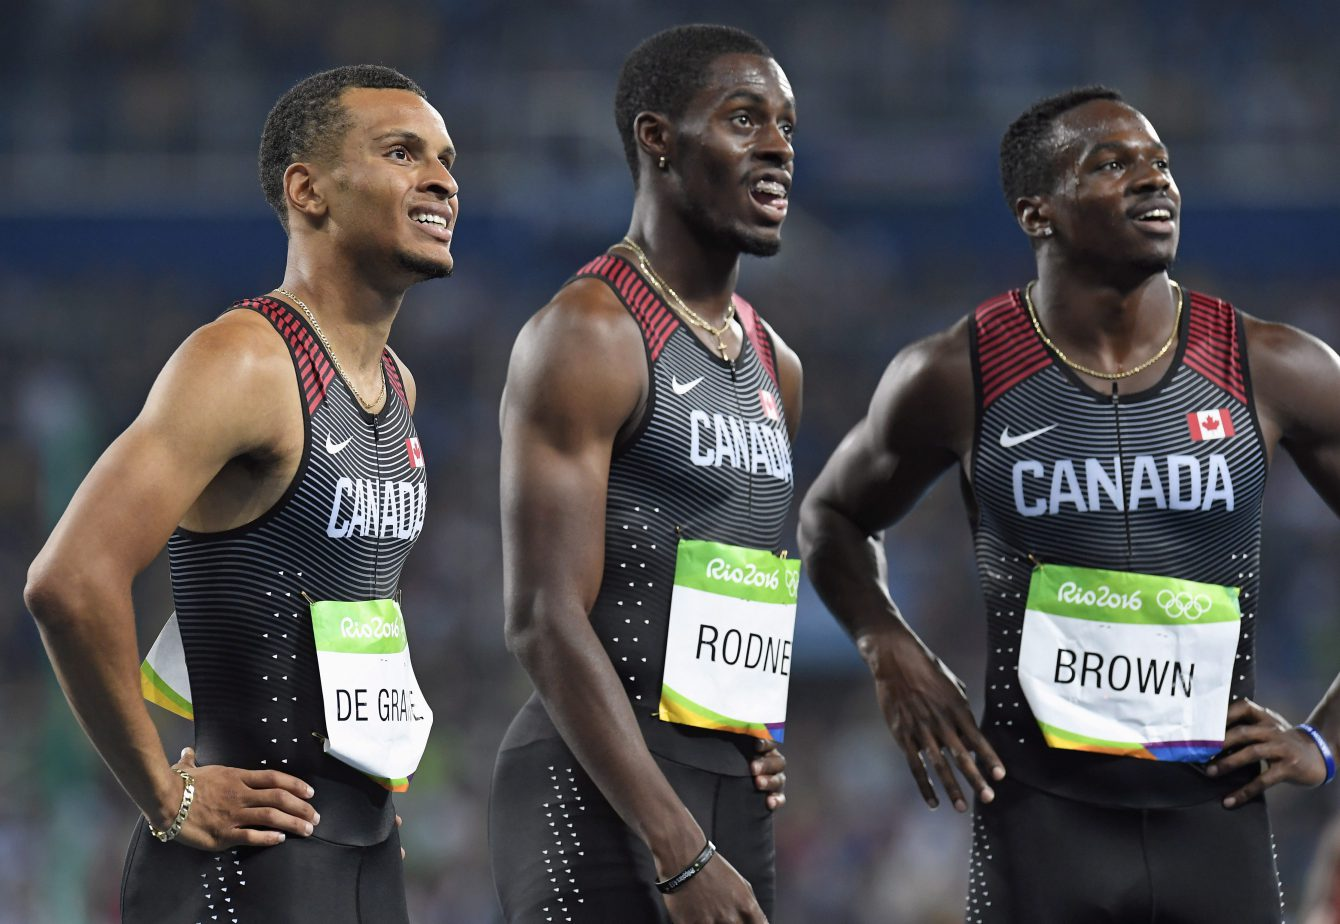 Canada's Andre De Grasse, left to right, Brendon Rodney and Aaron Brown watch the scoreboard following the men's 4x100-metre relay final at the 2016 Summer Olympics in Rio de Janeiro, Brazil on Friday, August 19, 2016. THE CANADIAN PRESS/Frank Gunn